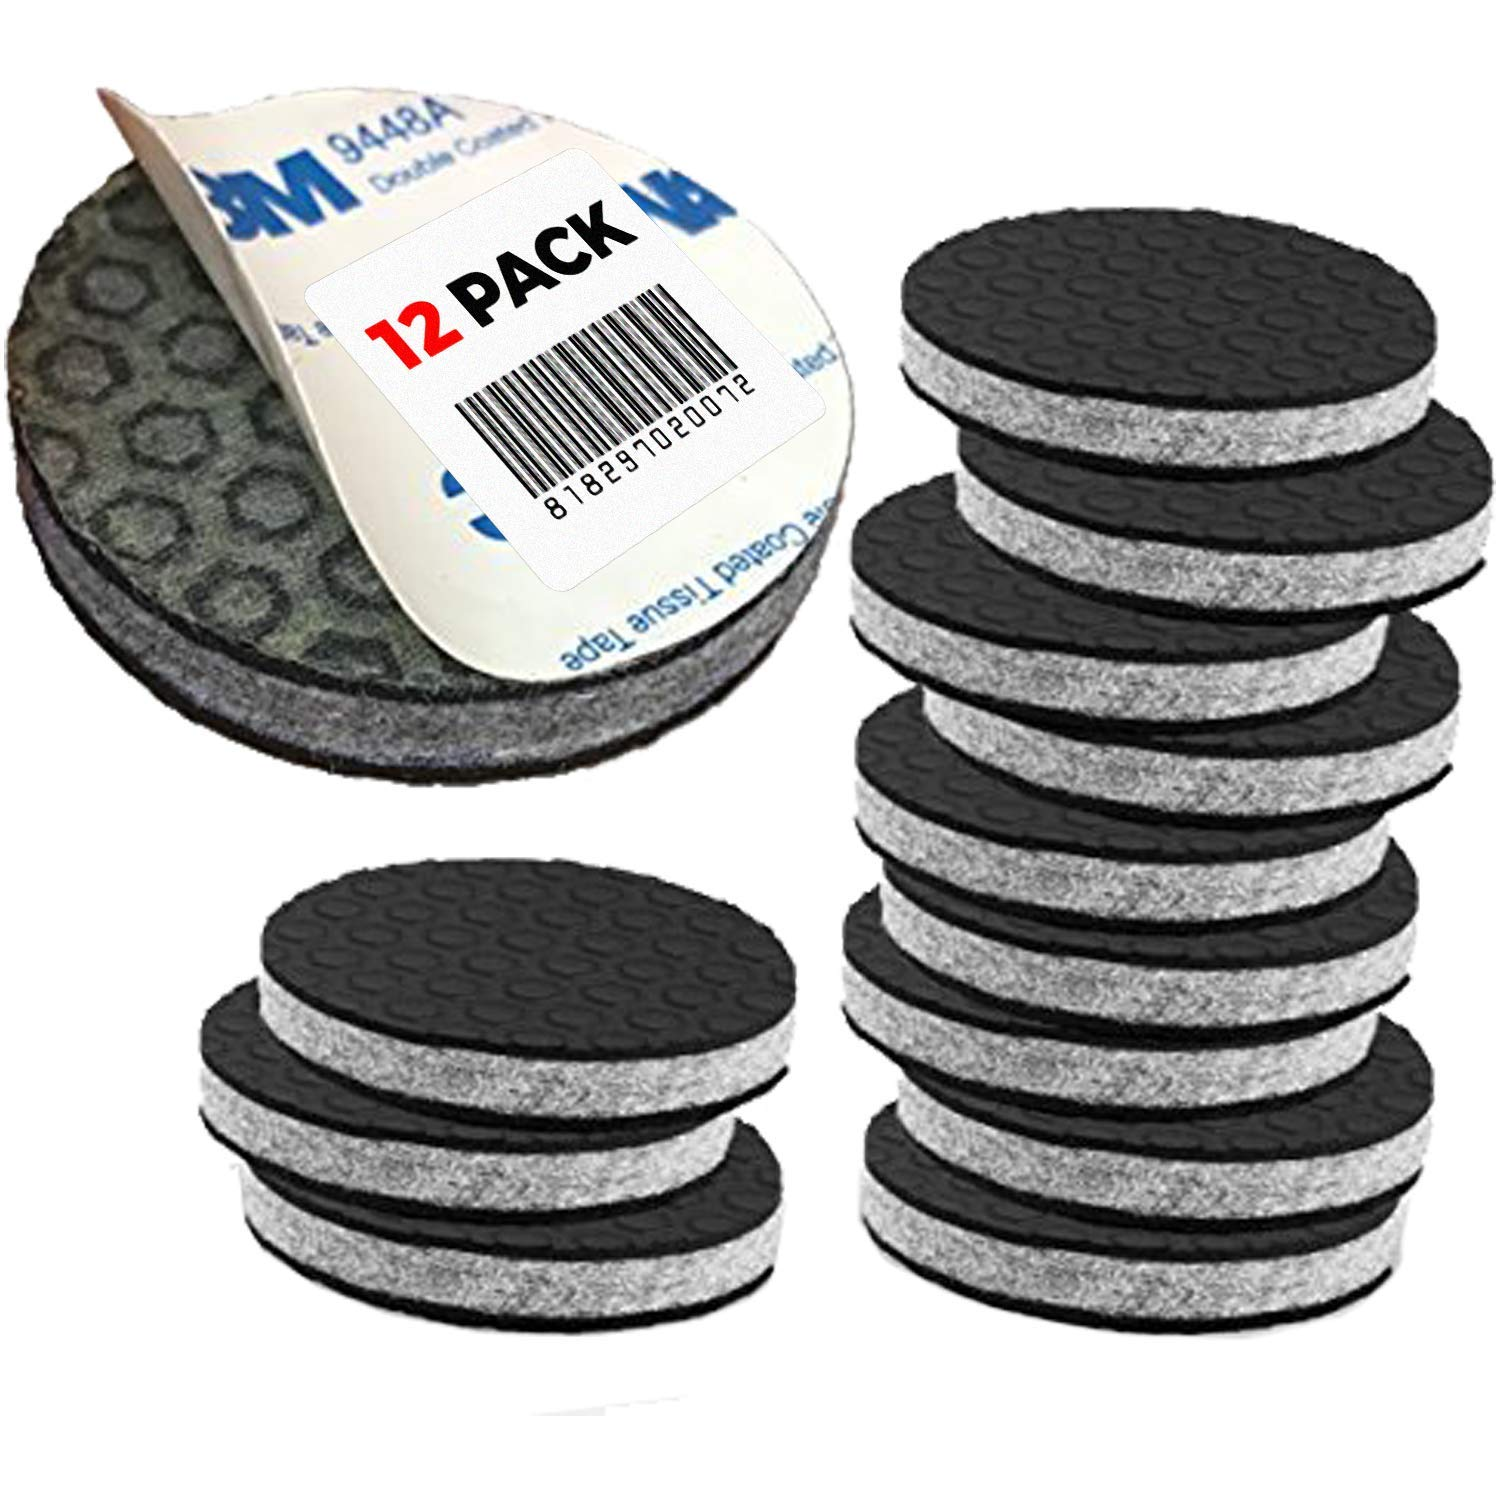 """SlipToGrip"" Non Slip Furniture Pad Grippers - 2"" Round with Adhesive Side - Furniture Non-Slip Pads with 3/8"" Heavy Duty Felt Core. No Nails. Patent Pending (12 Pack)"